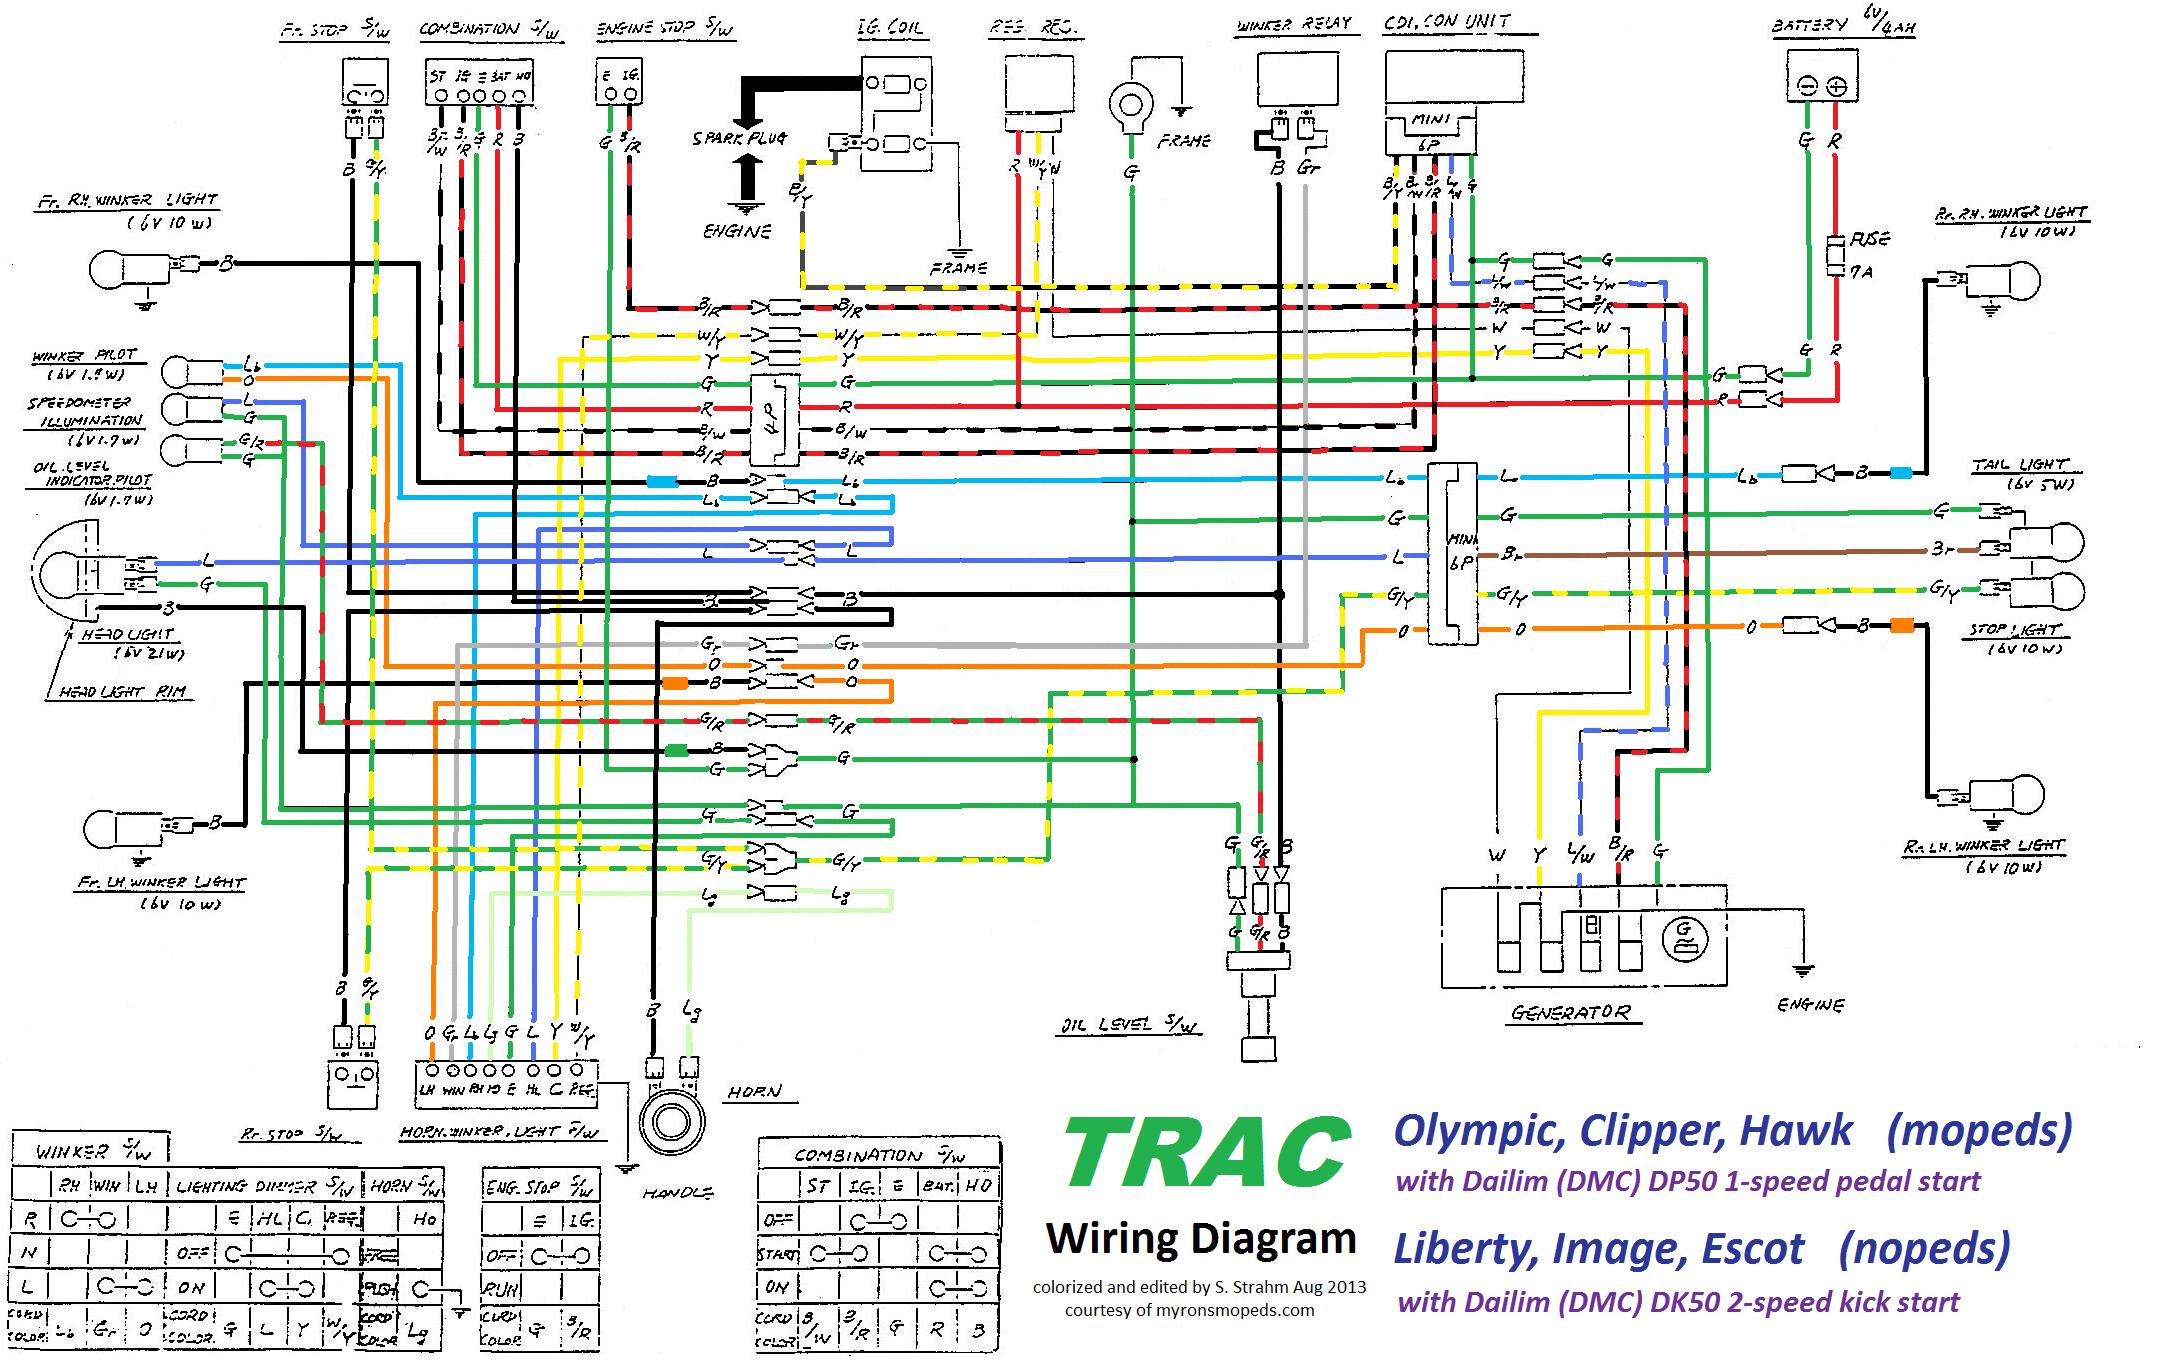 Ho Signal Wiring Diagrams Library Atlas Turntable Diagram This Is Almost Exactly What The Clipper Has Headlight On